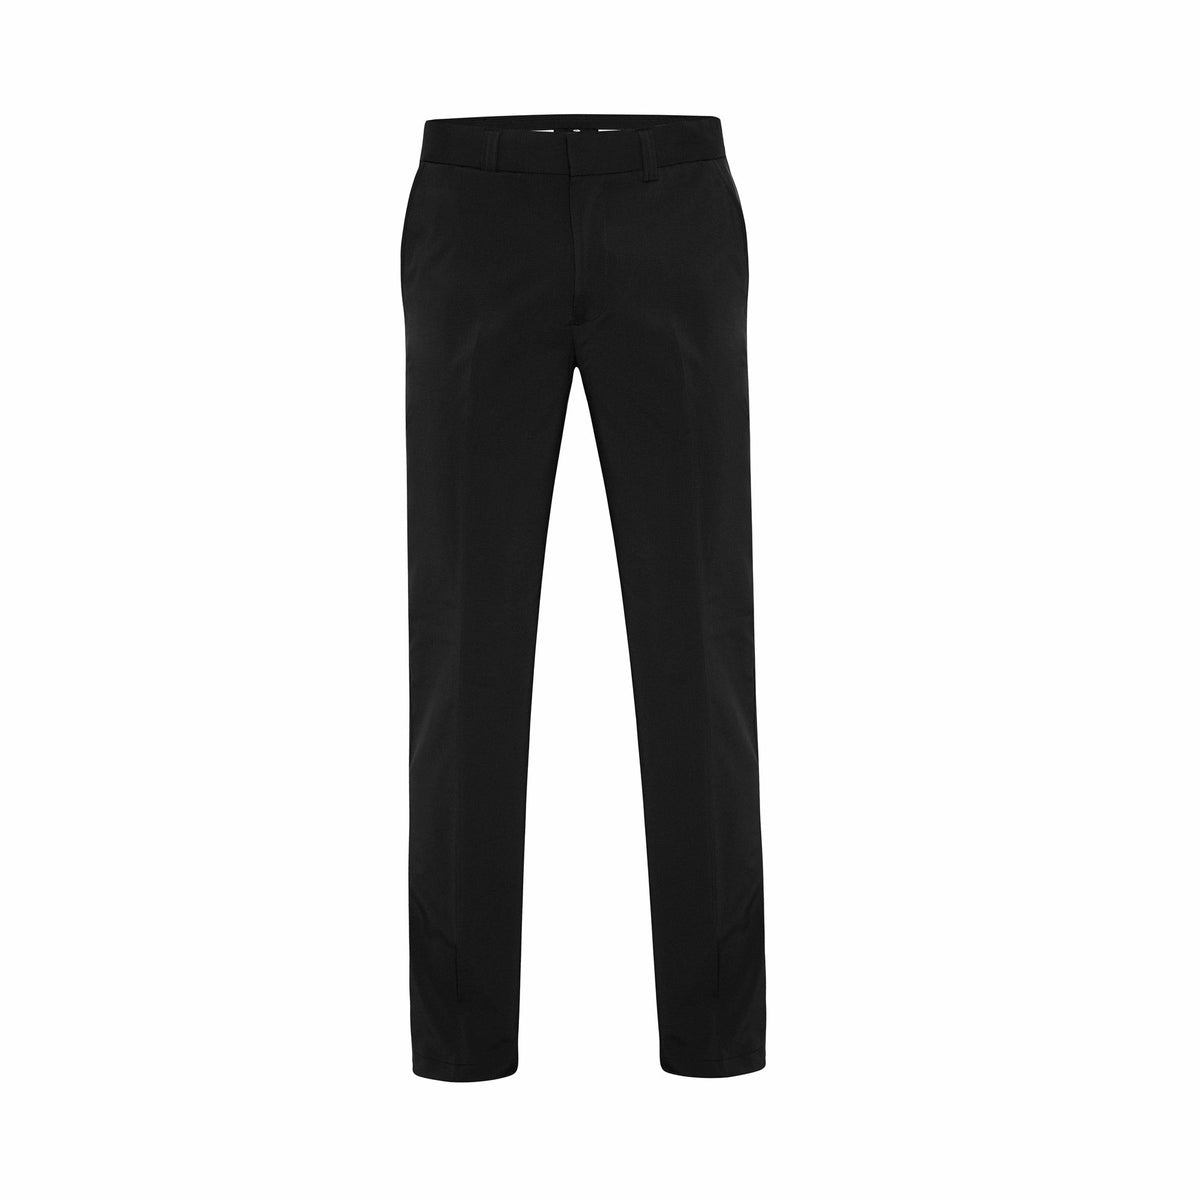 Sporte Dri Tech Adjustable Waist Golf Pant